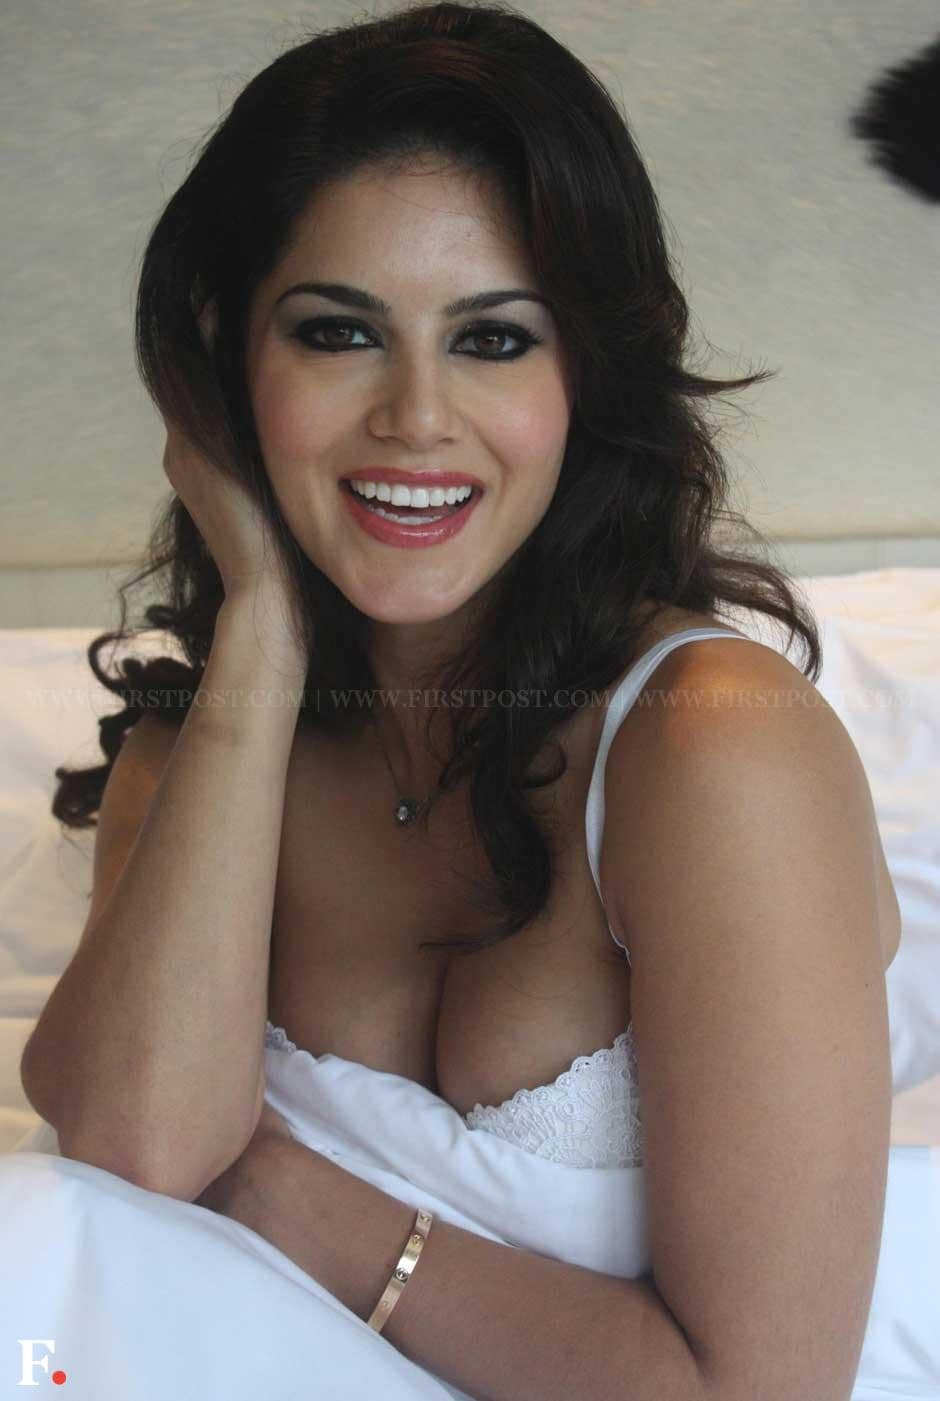 Sunny Leone poses while promoting her upcoming film 'Jism 2' at Le Meridian Hotel in New Delhi. Naresh Sharma/Firstpost